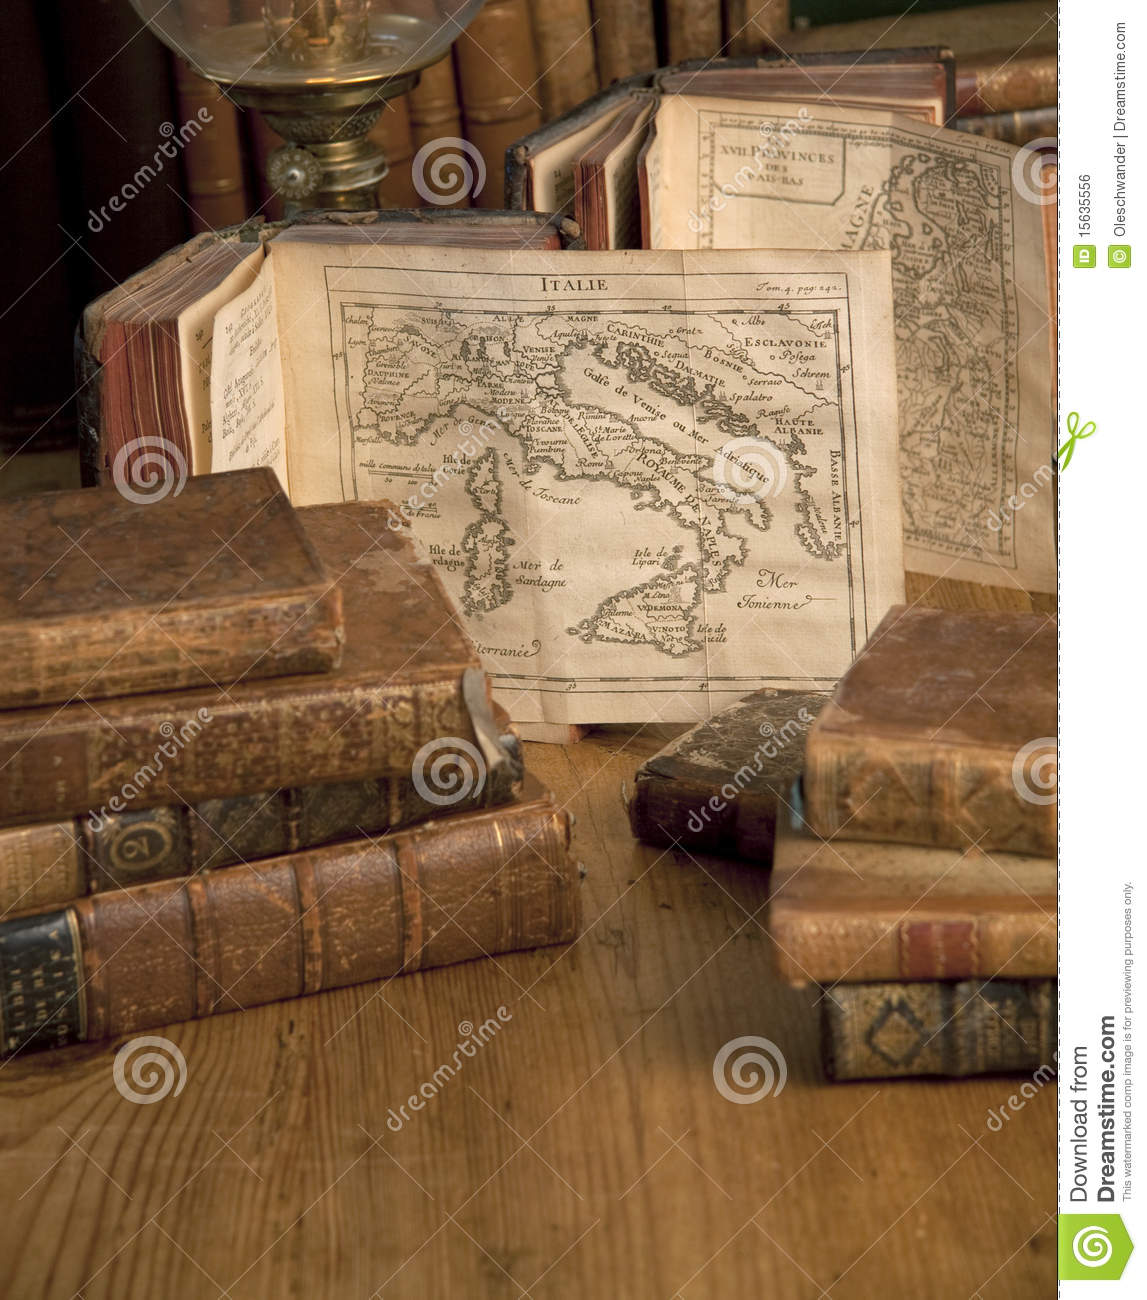 Vintage books old maps on a wooden table